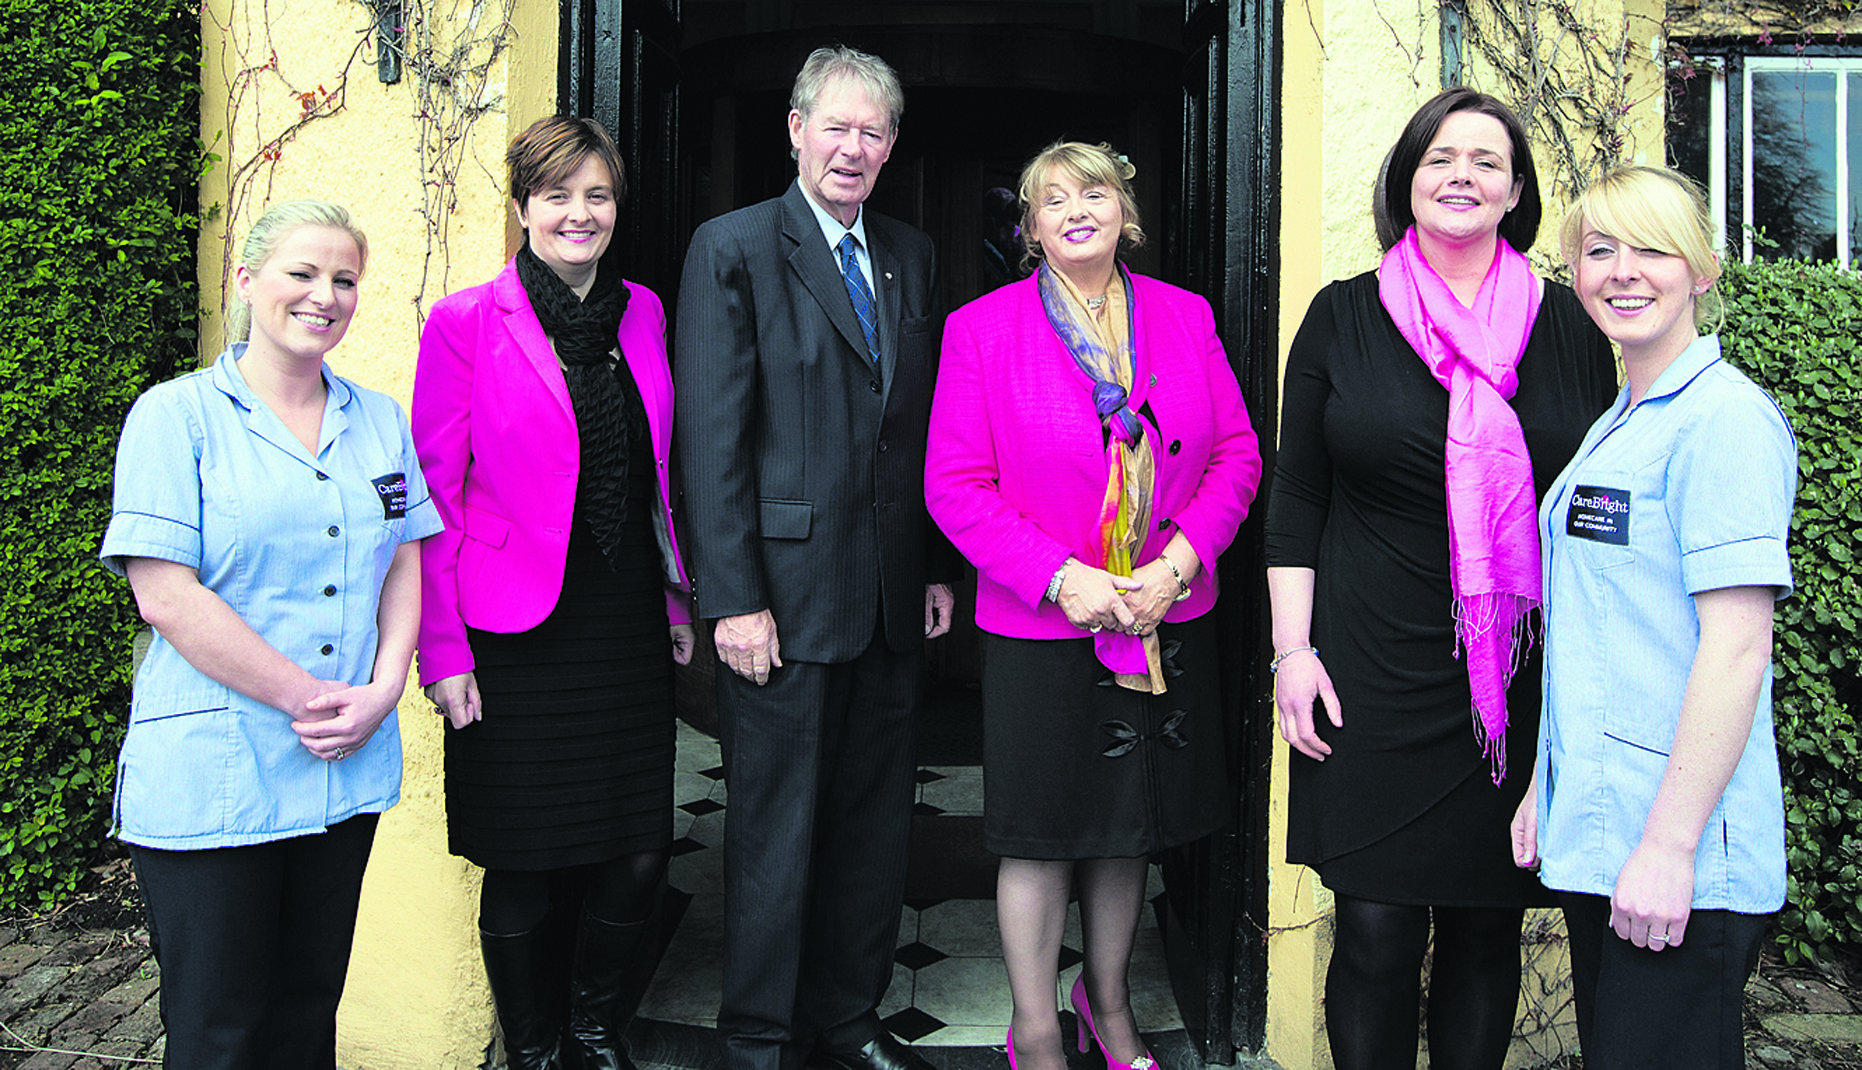 County Limerick company shortlisted as a finalist in the 2013 Q Mark Awards